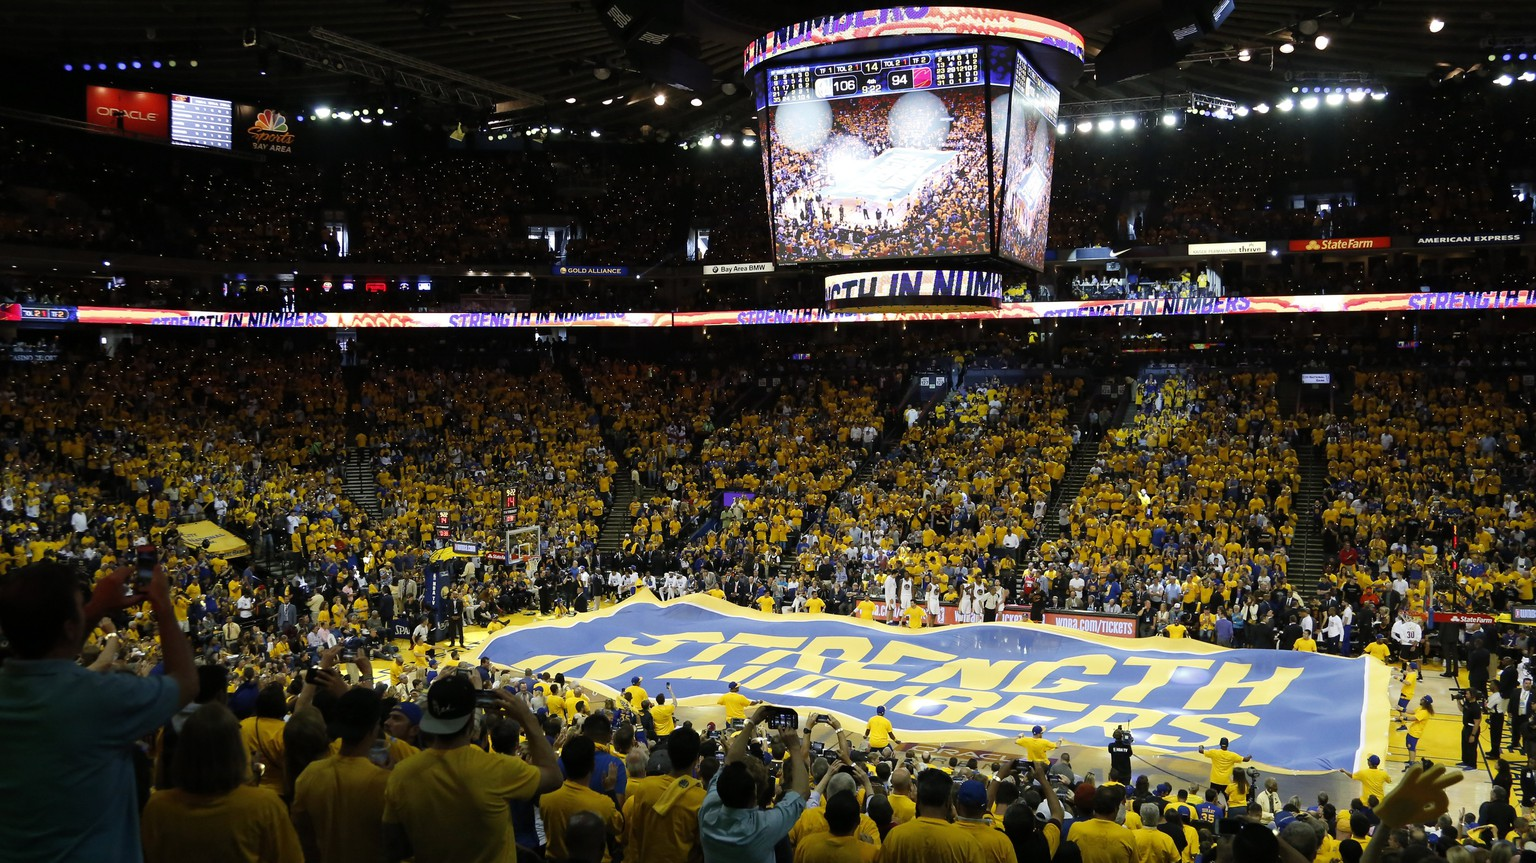 epa06011205 Golden State Warriors time-out fan ceremony against the Cleveland Cavaliers during game two of the NBA Finals basketball game at Oracle Arena in Oakland, California, USA, 04 June 2017.  EPA/JOHN G. MABANGLO